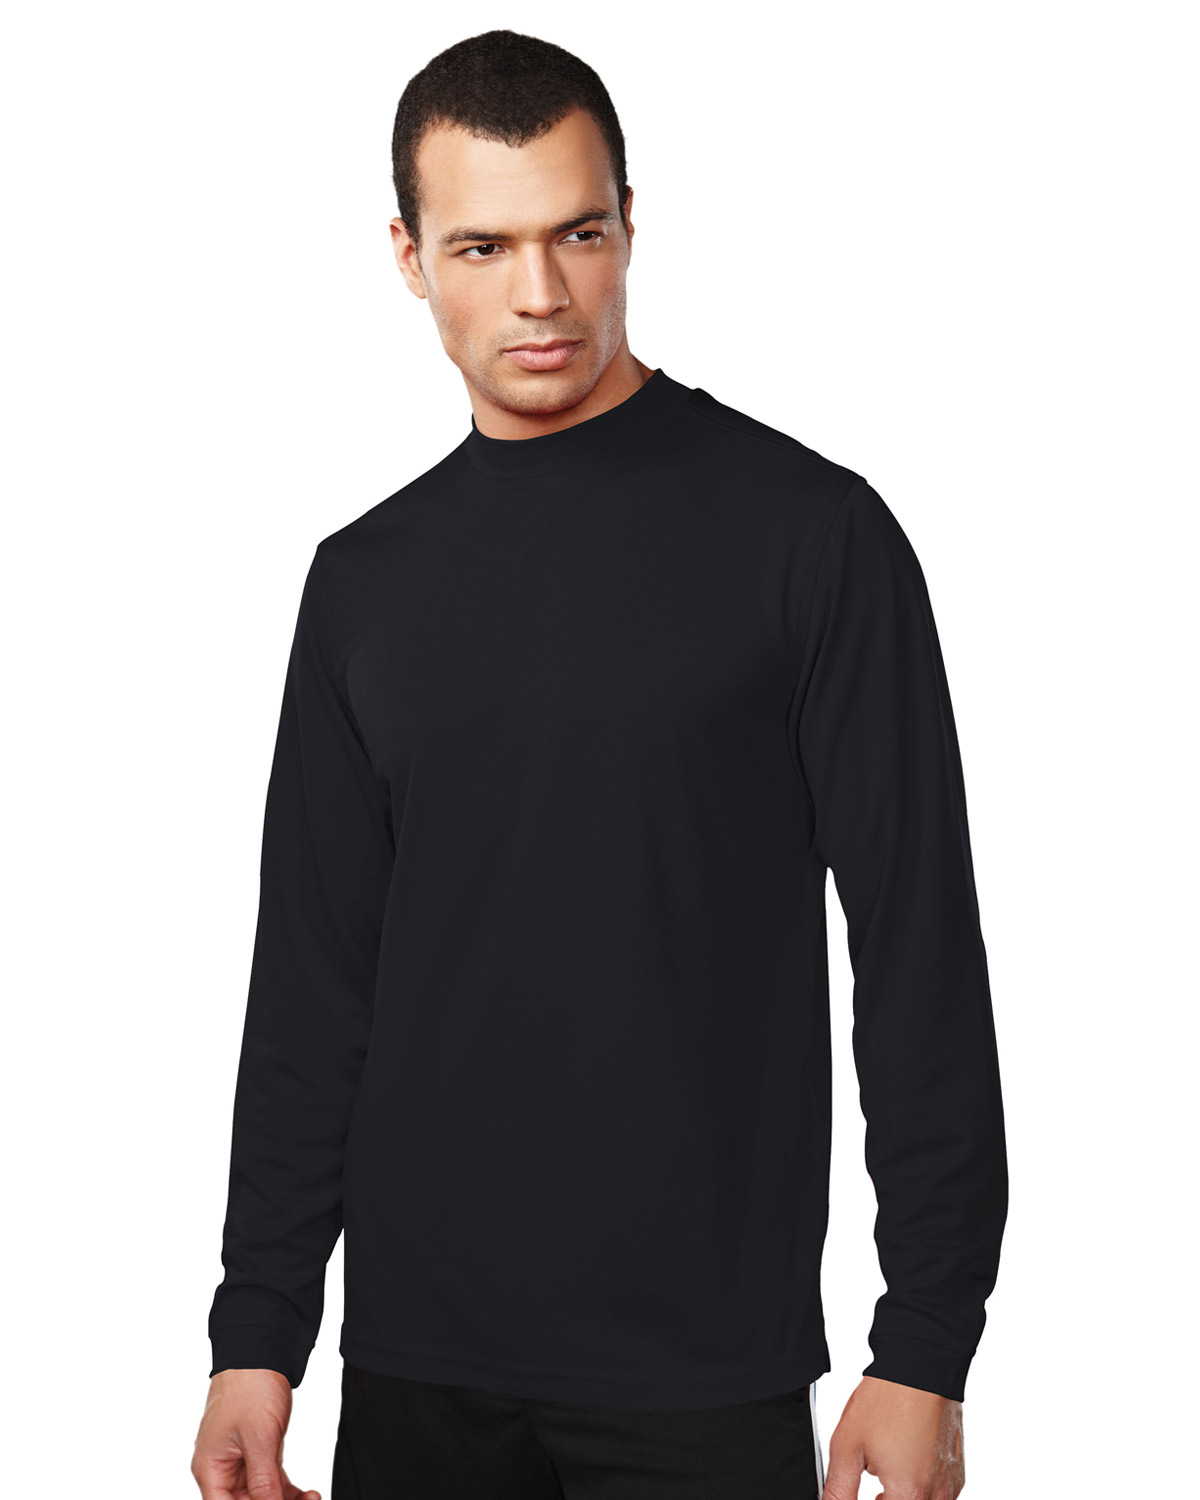 Men S 100 Polyester Ls Knit Mock Neck Shirt W Self Cuff